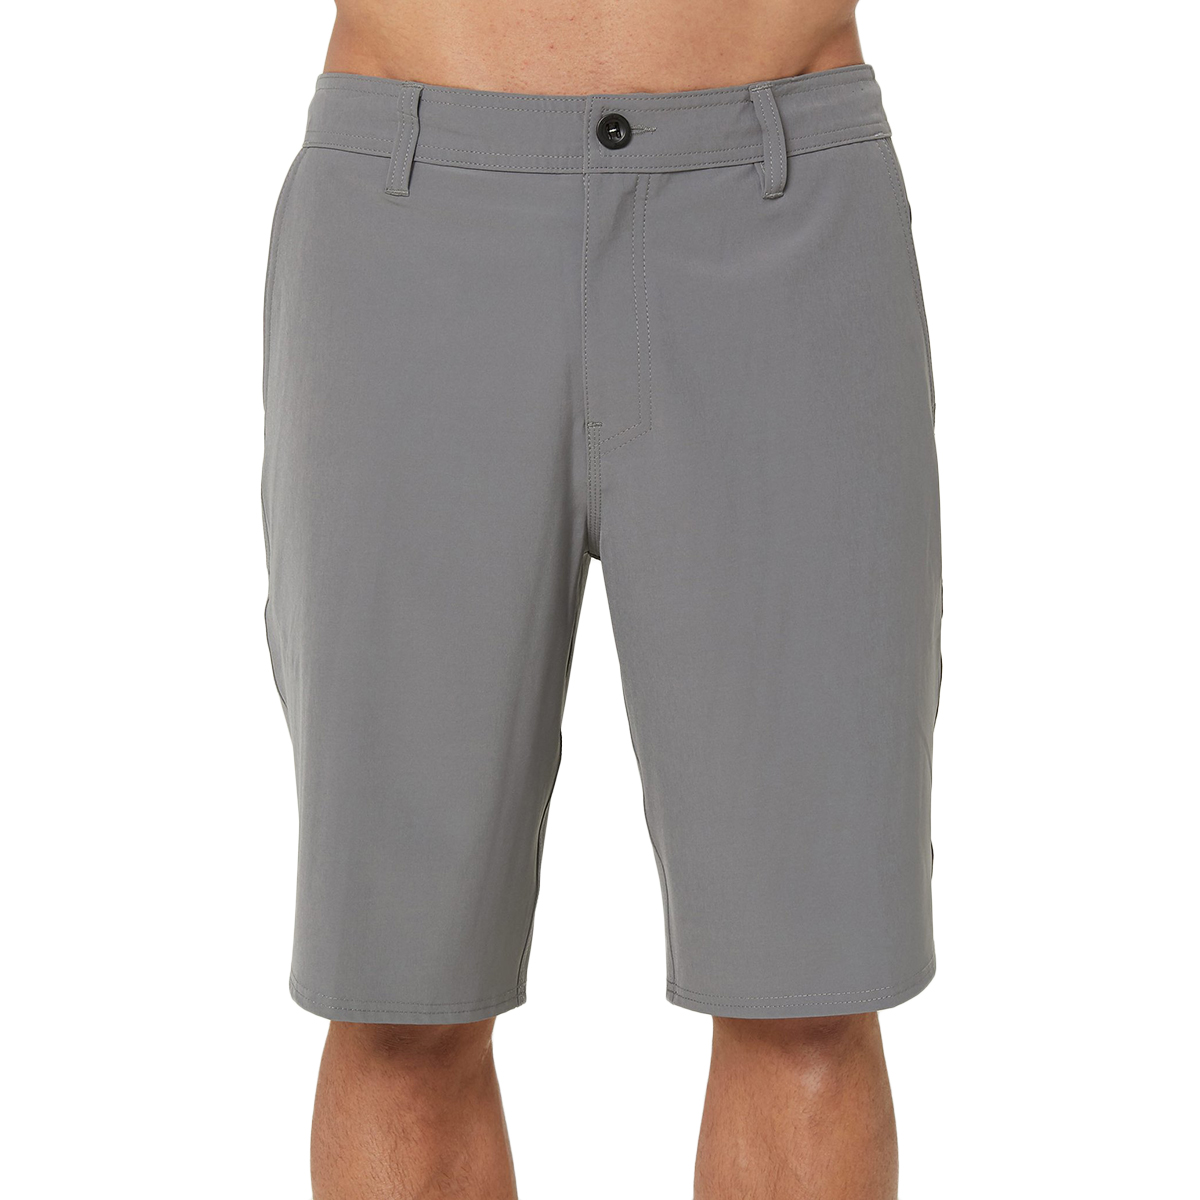 O'neill Men's Loaded Reserve Hybrid Shorts - Black, 32